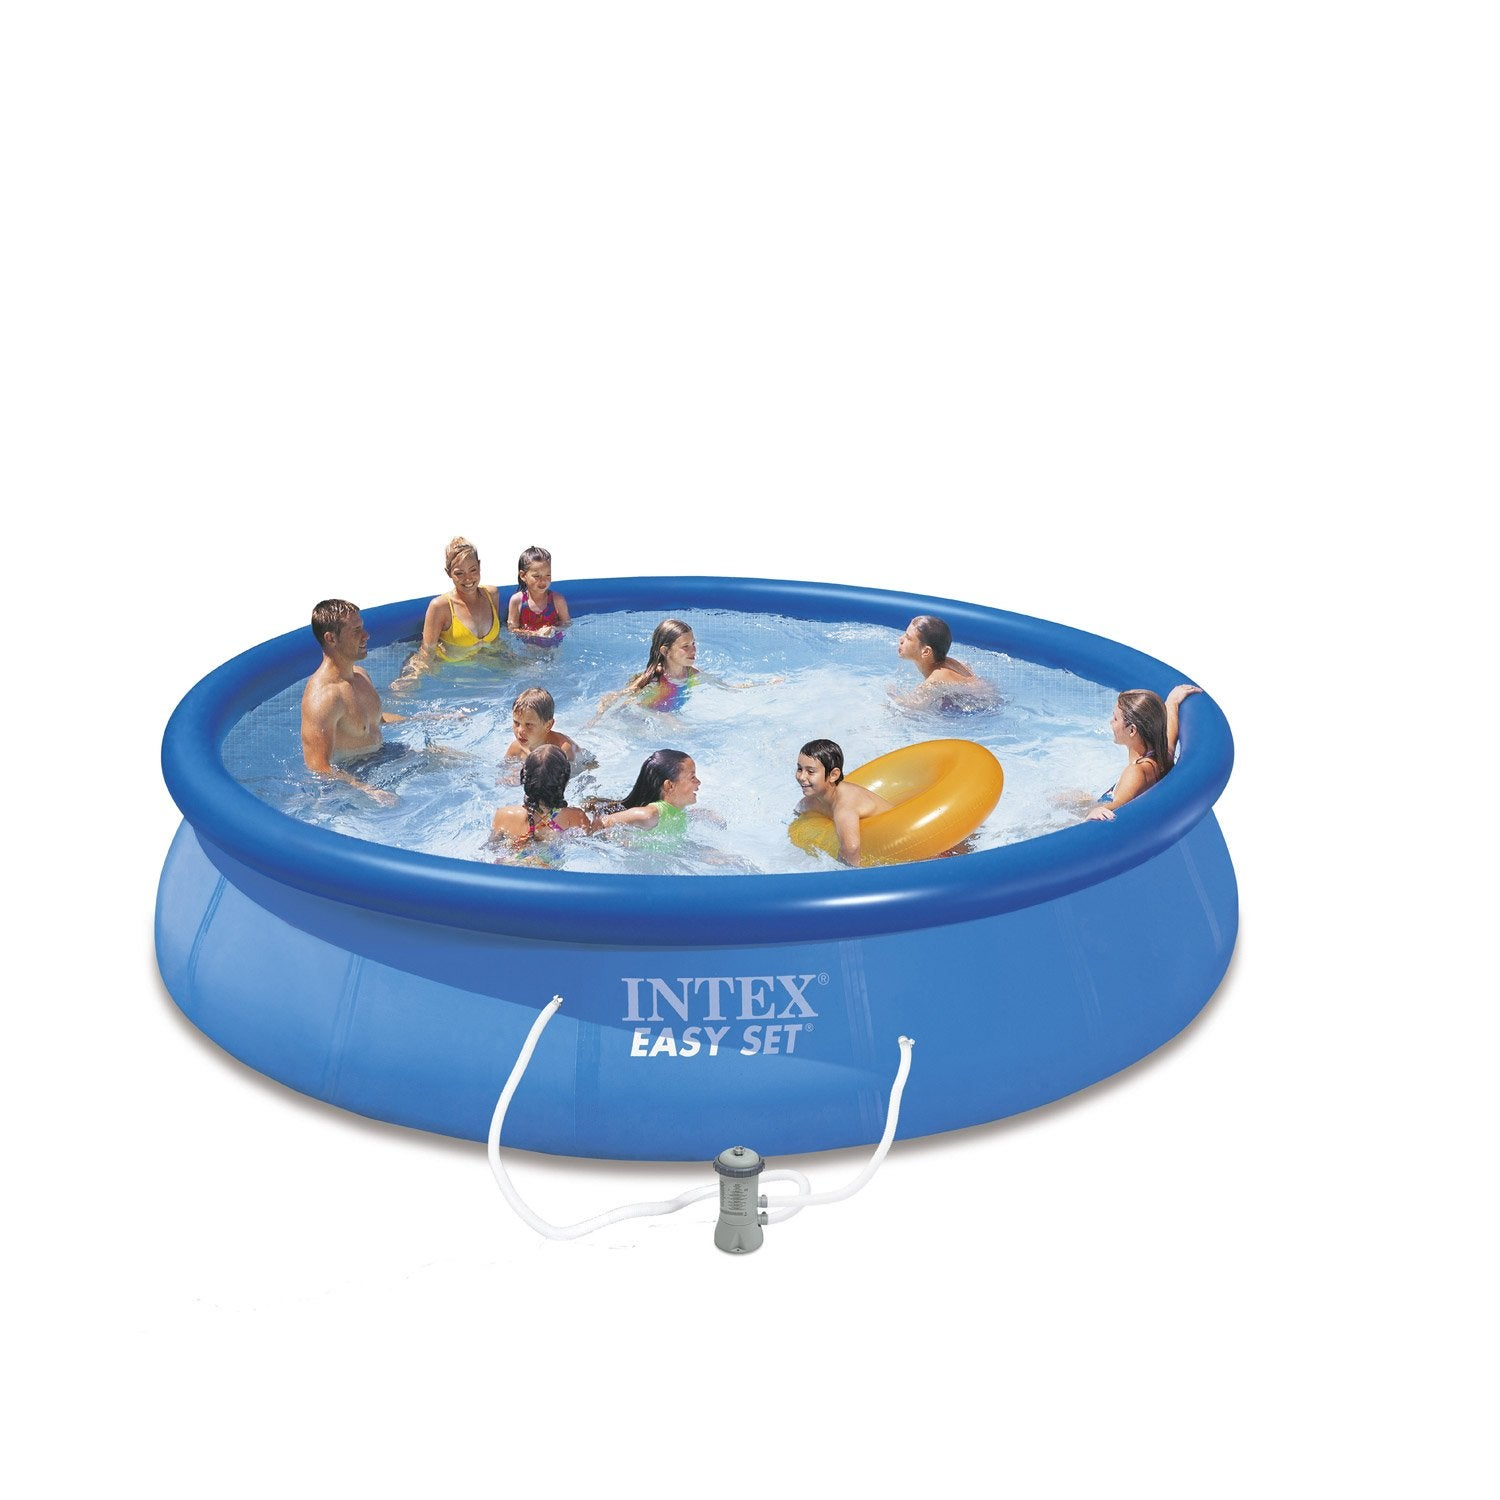 Piscine hors sol autoportante gonflable easy set intex for Piscine hors sol autoportee zodiac